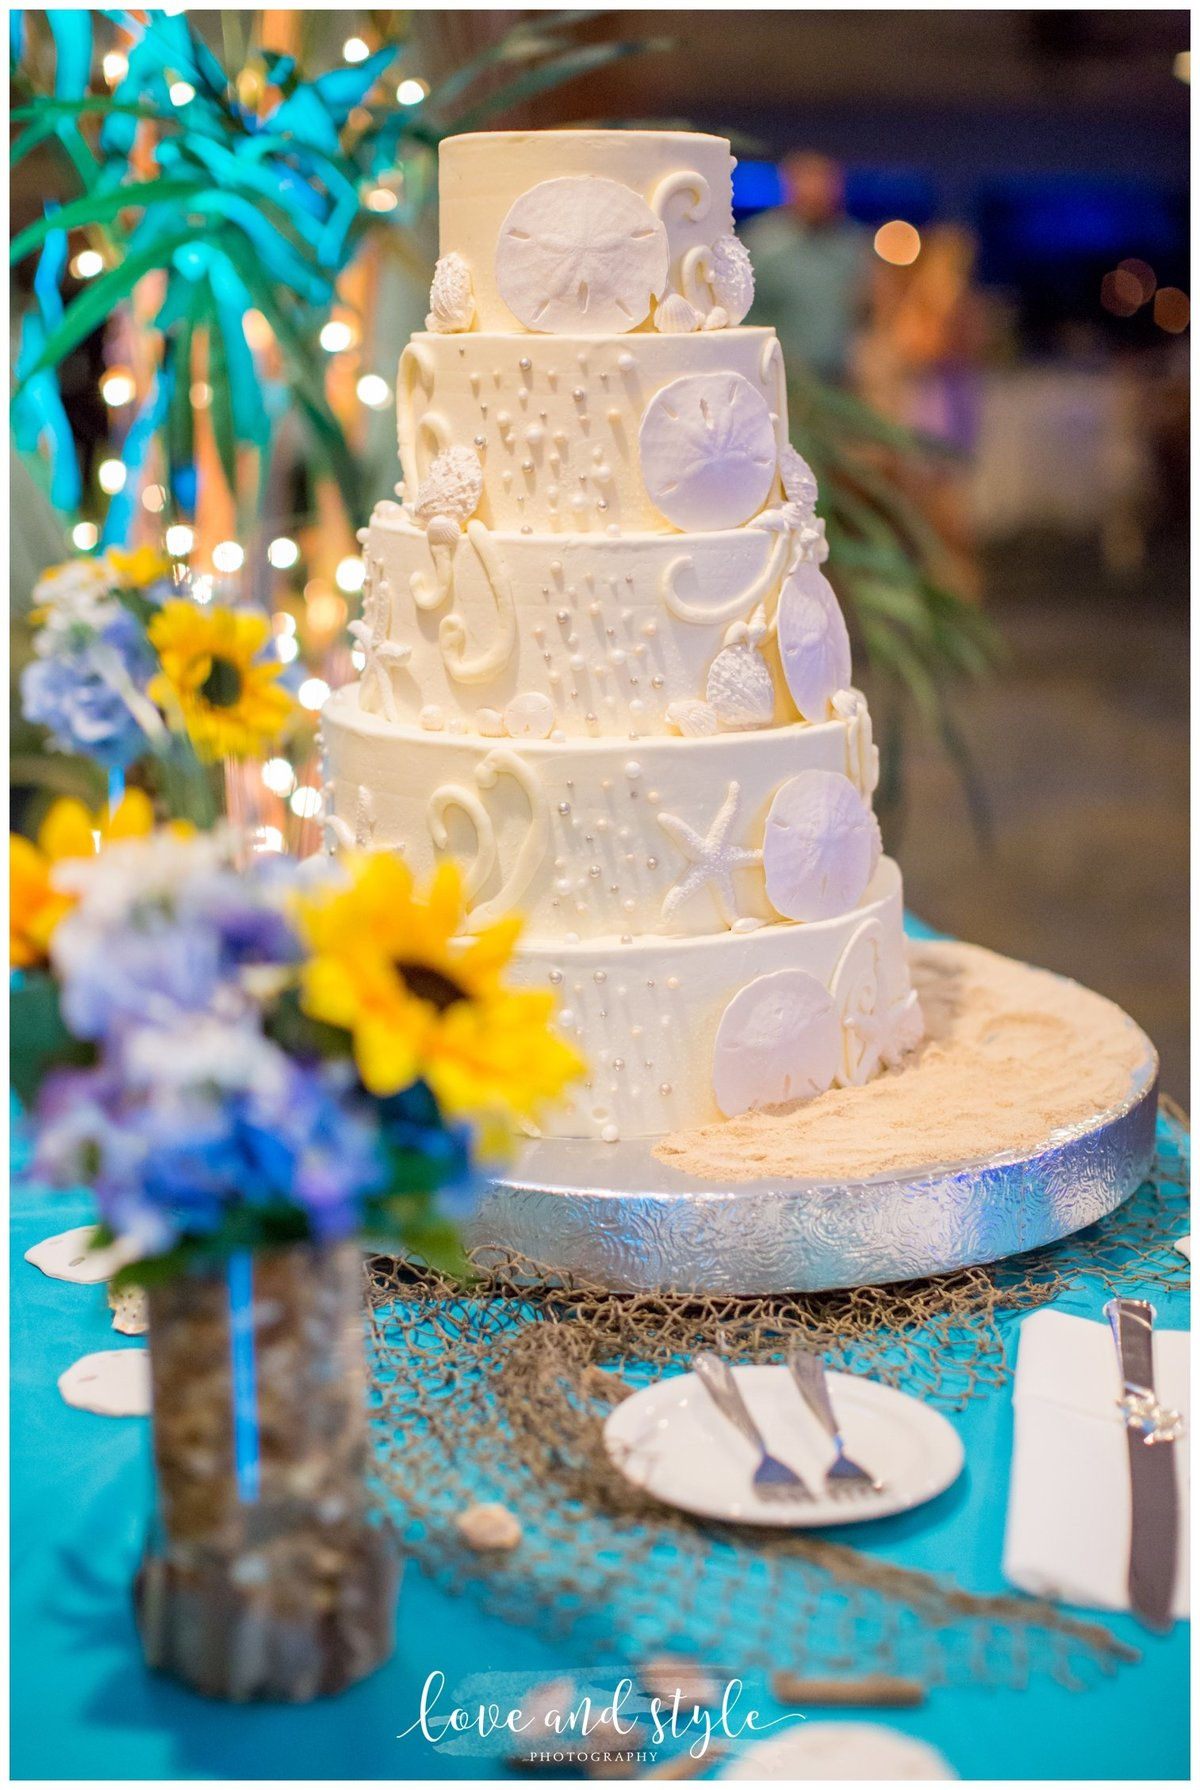 The Seafood Shack wedding reception photography of the wedding cake